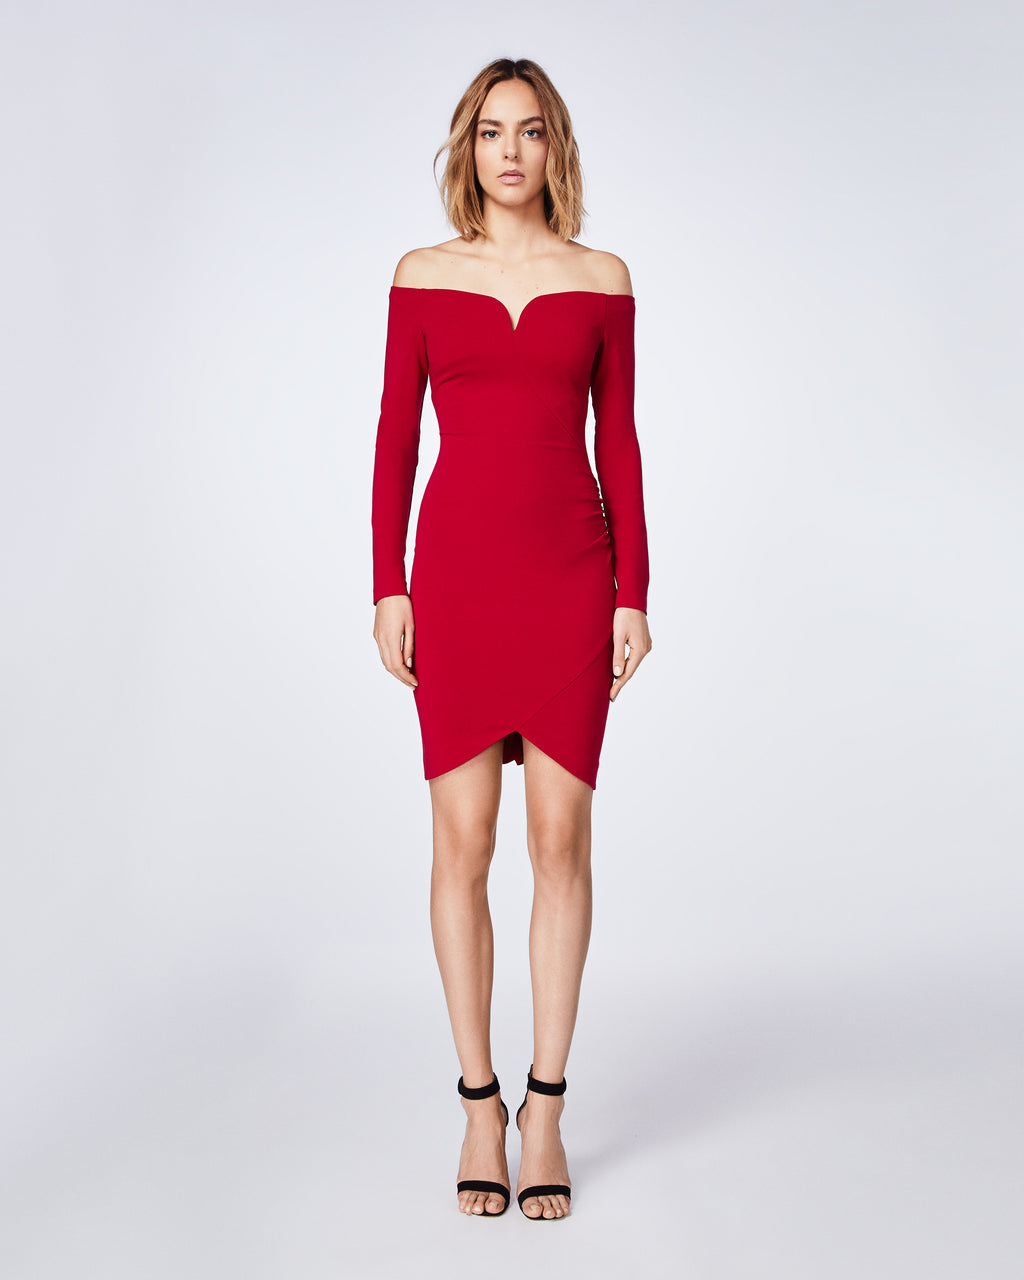 BT10117 - JERSEY OFF SHOULDER DRESS - dresses - short - In a fitted off the shoulder silhoutte, this long sleeve dresse features sweetheart neckline. Make a statement with the red dress for holiday party.